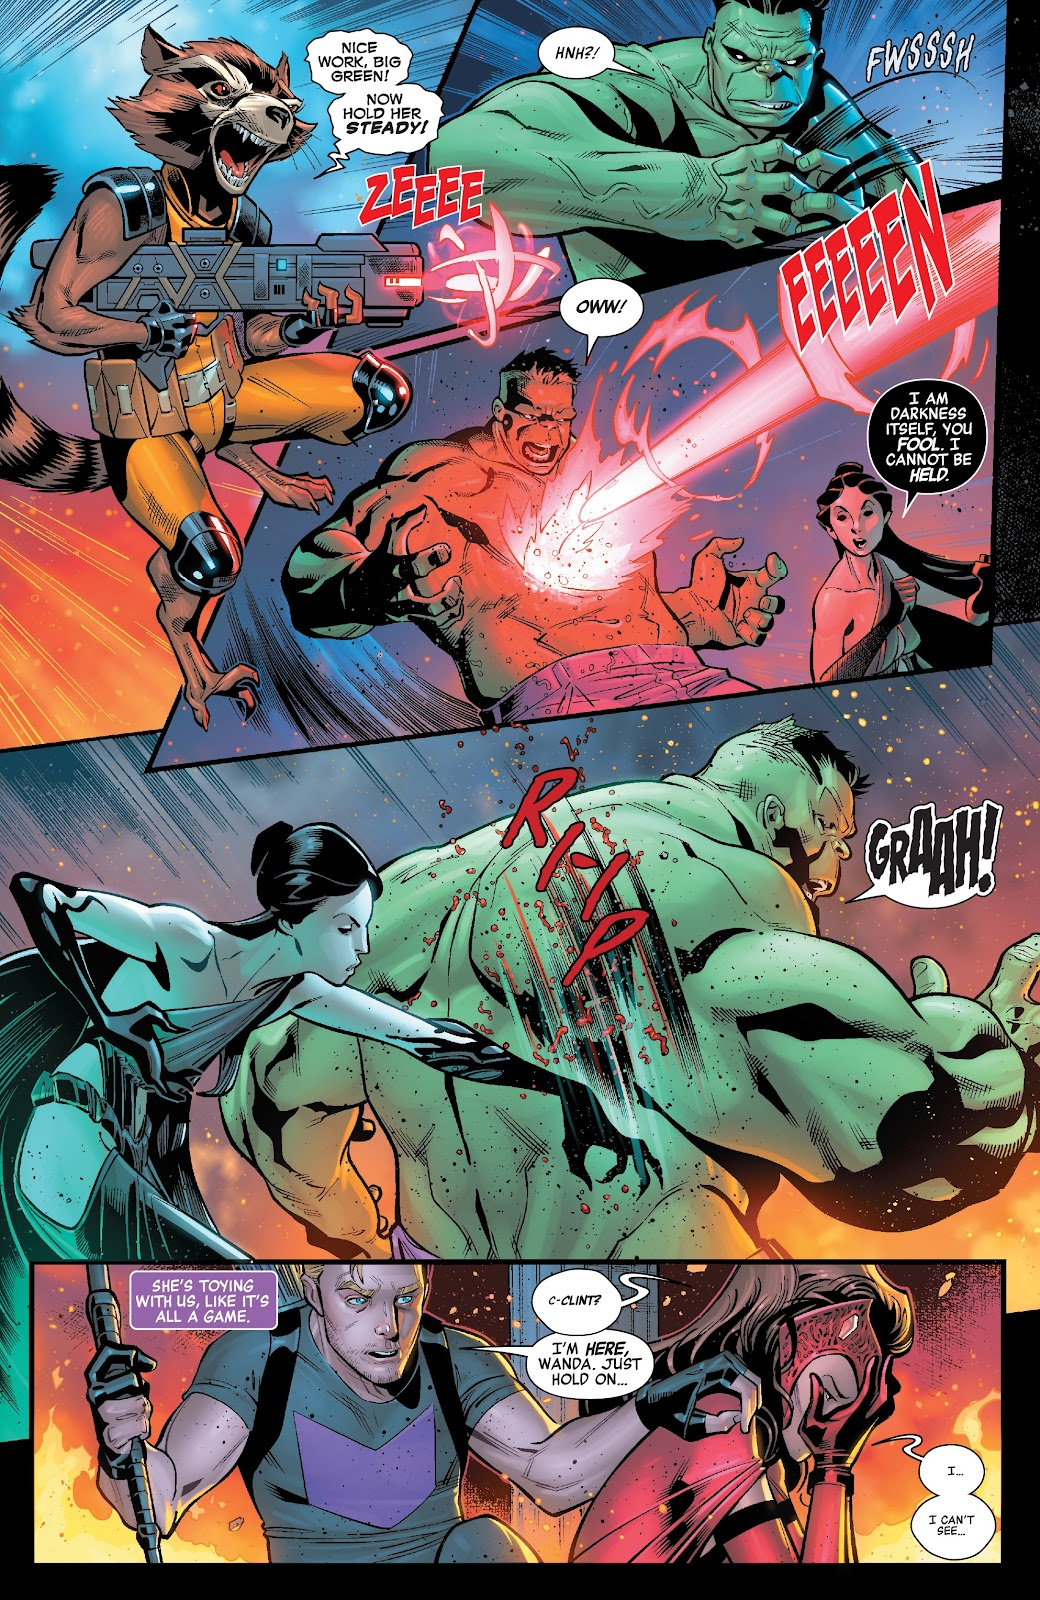 Read online Avengers No Road Home comic -  Issue #2 - 14